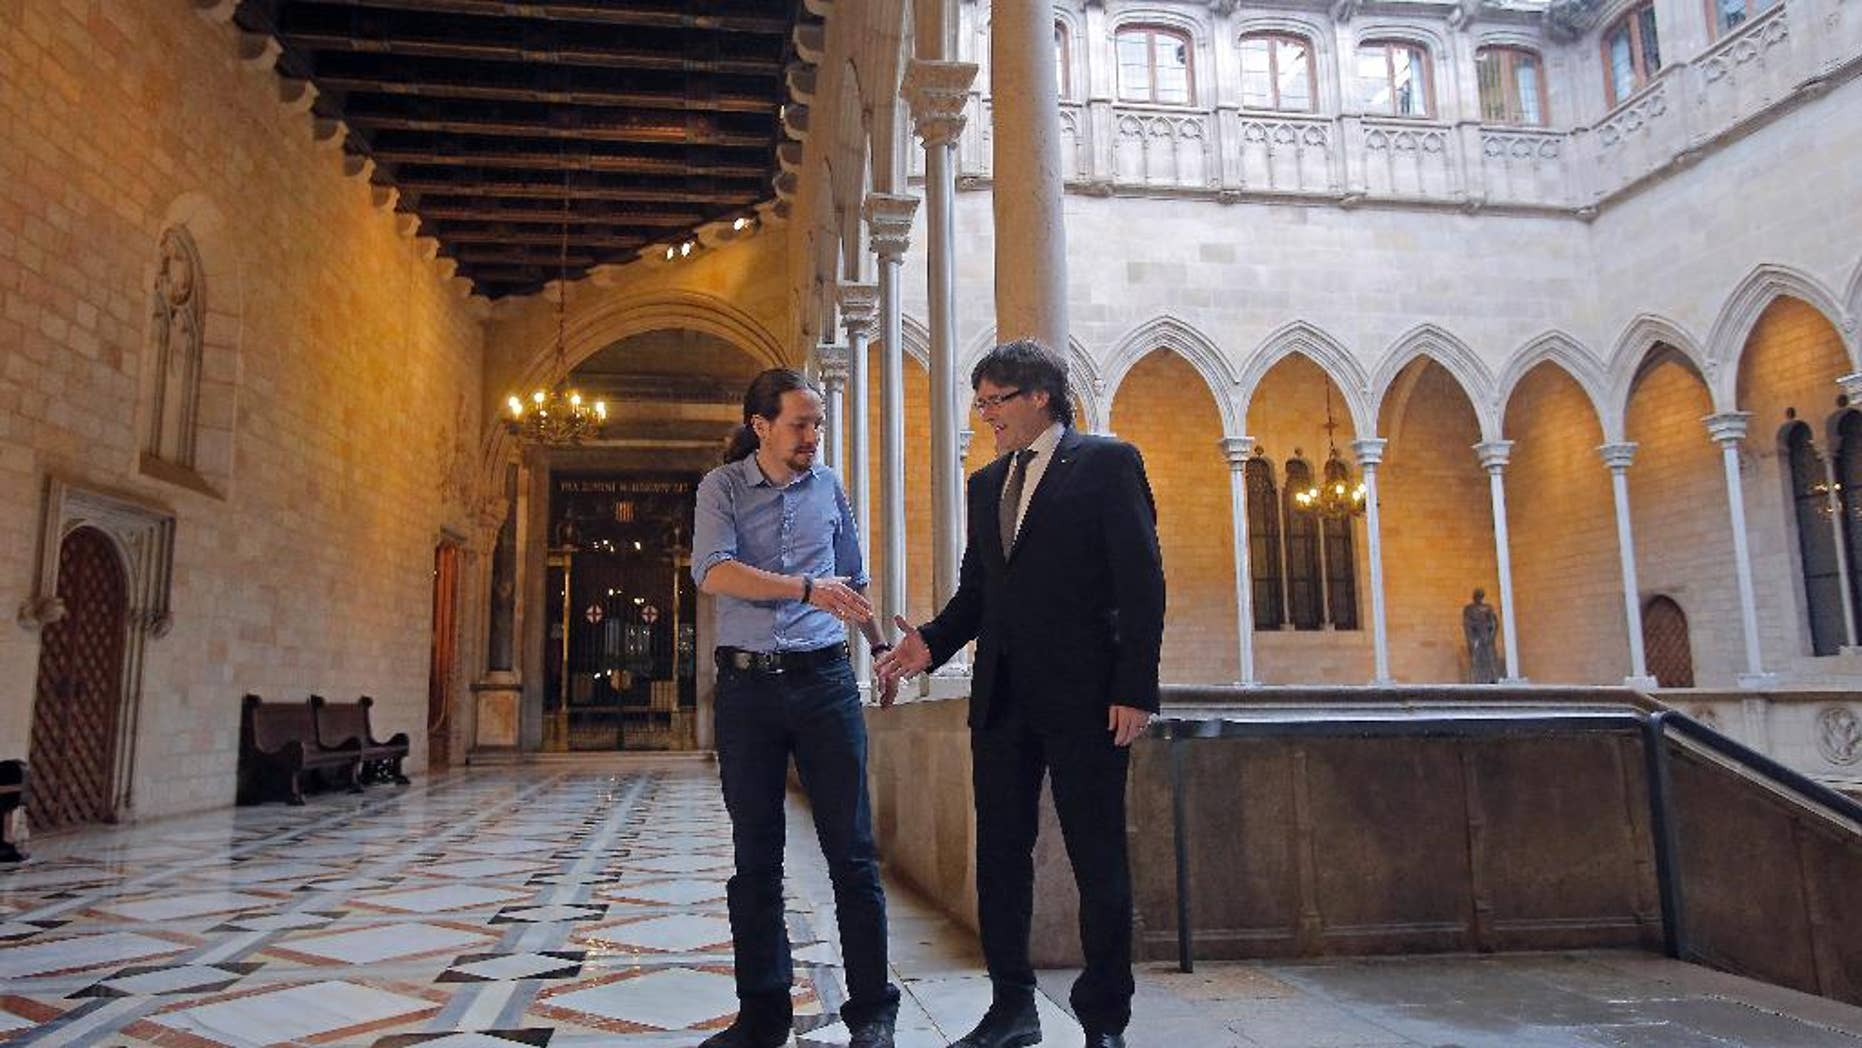 Catalan regional President Carles Puigdemont, right, shakes hands with Podemos Party leader Pablo Iglesias at the Generalitat Palace in Barcelona, Spain, Friday, April 8, 2016. The leader of Spain's far left Podemos party has announced party members will vote next week on whether to support or oppose a deal to form a government and end nearly four months of political stalemate. Pablo Iglesias made the announcement Friday, a day after he met with negotiators for the Socialists and the centrist Ciudadanos party. They have a deal to form a government but lack parliamentary support and could get it from Podemos. (AP Photo/Manu Fernandez)